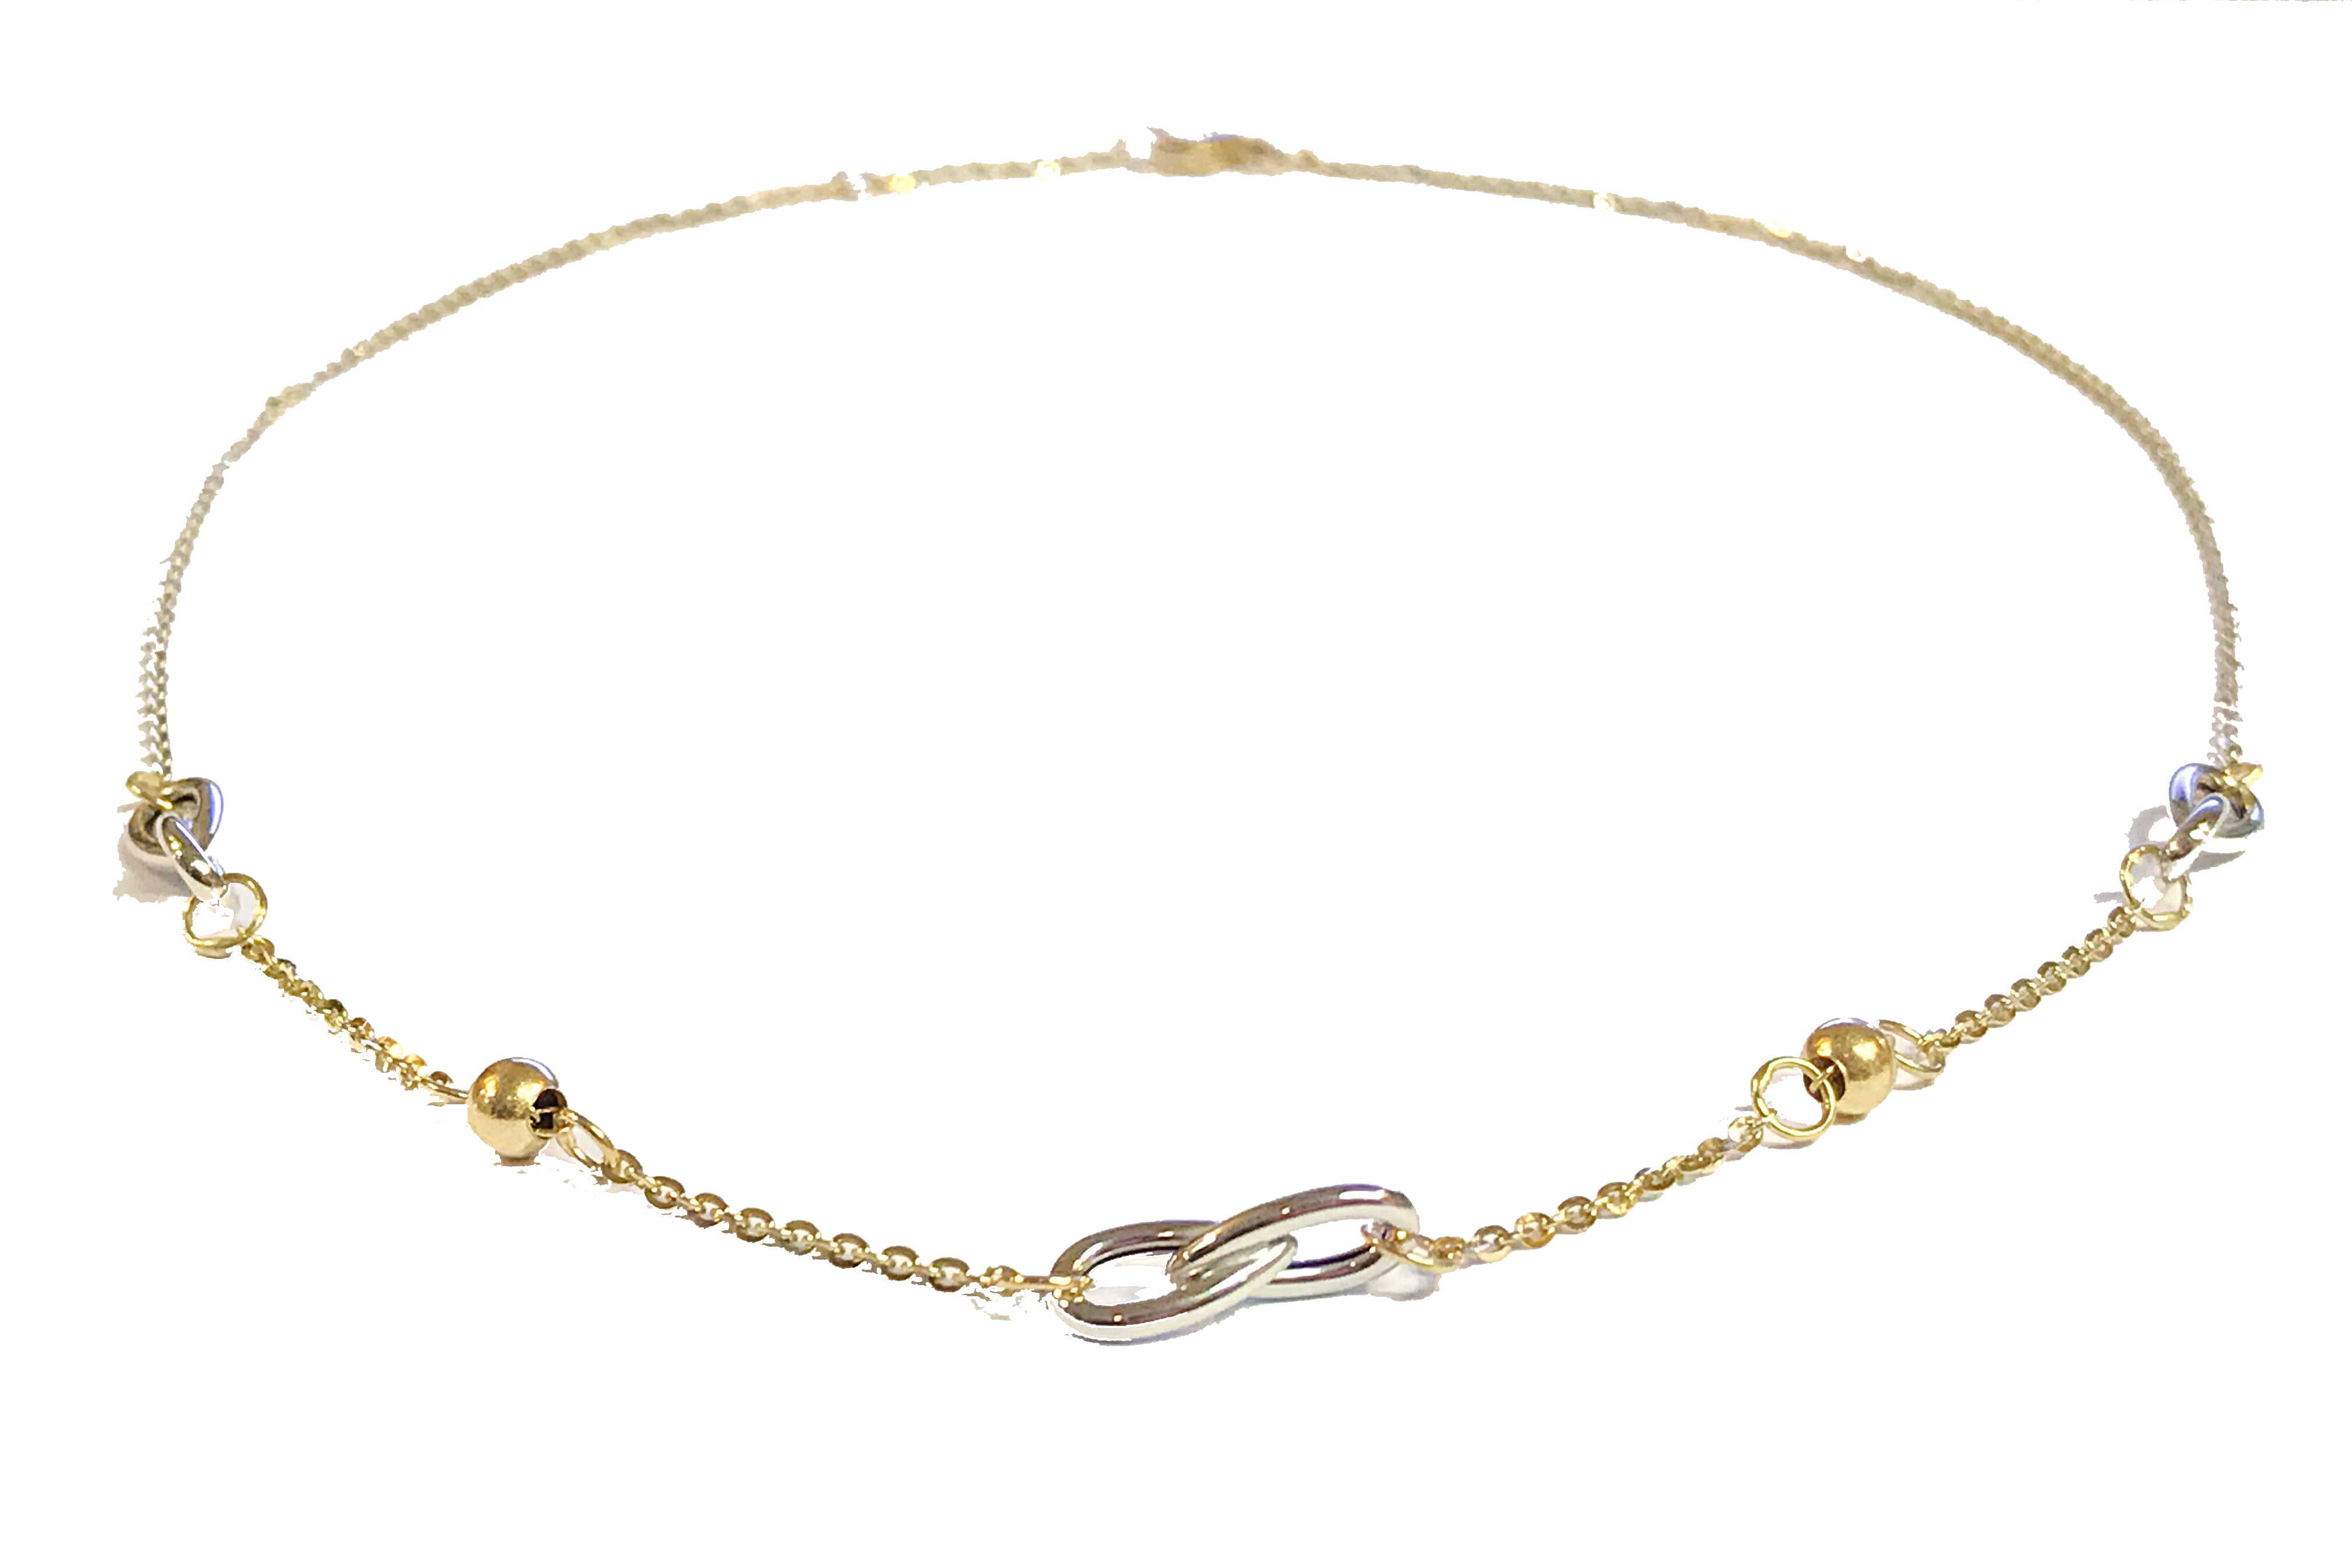 9ct Yellow and White Gold Necklace - Andrew Scott